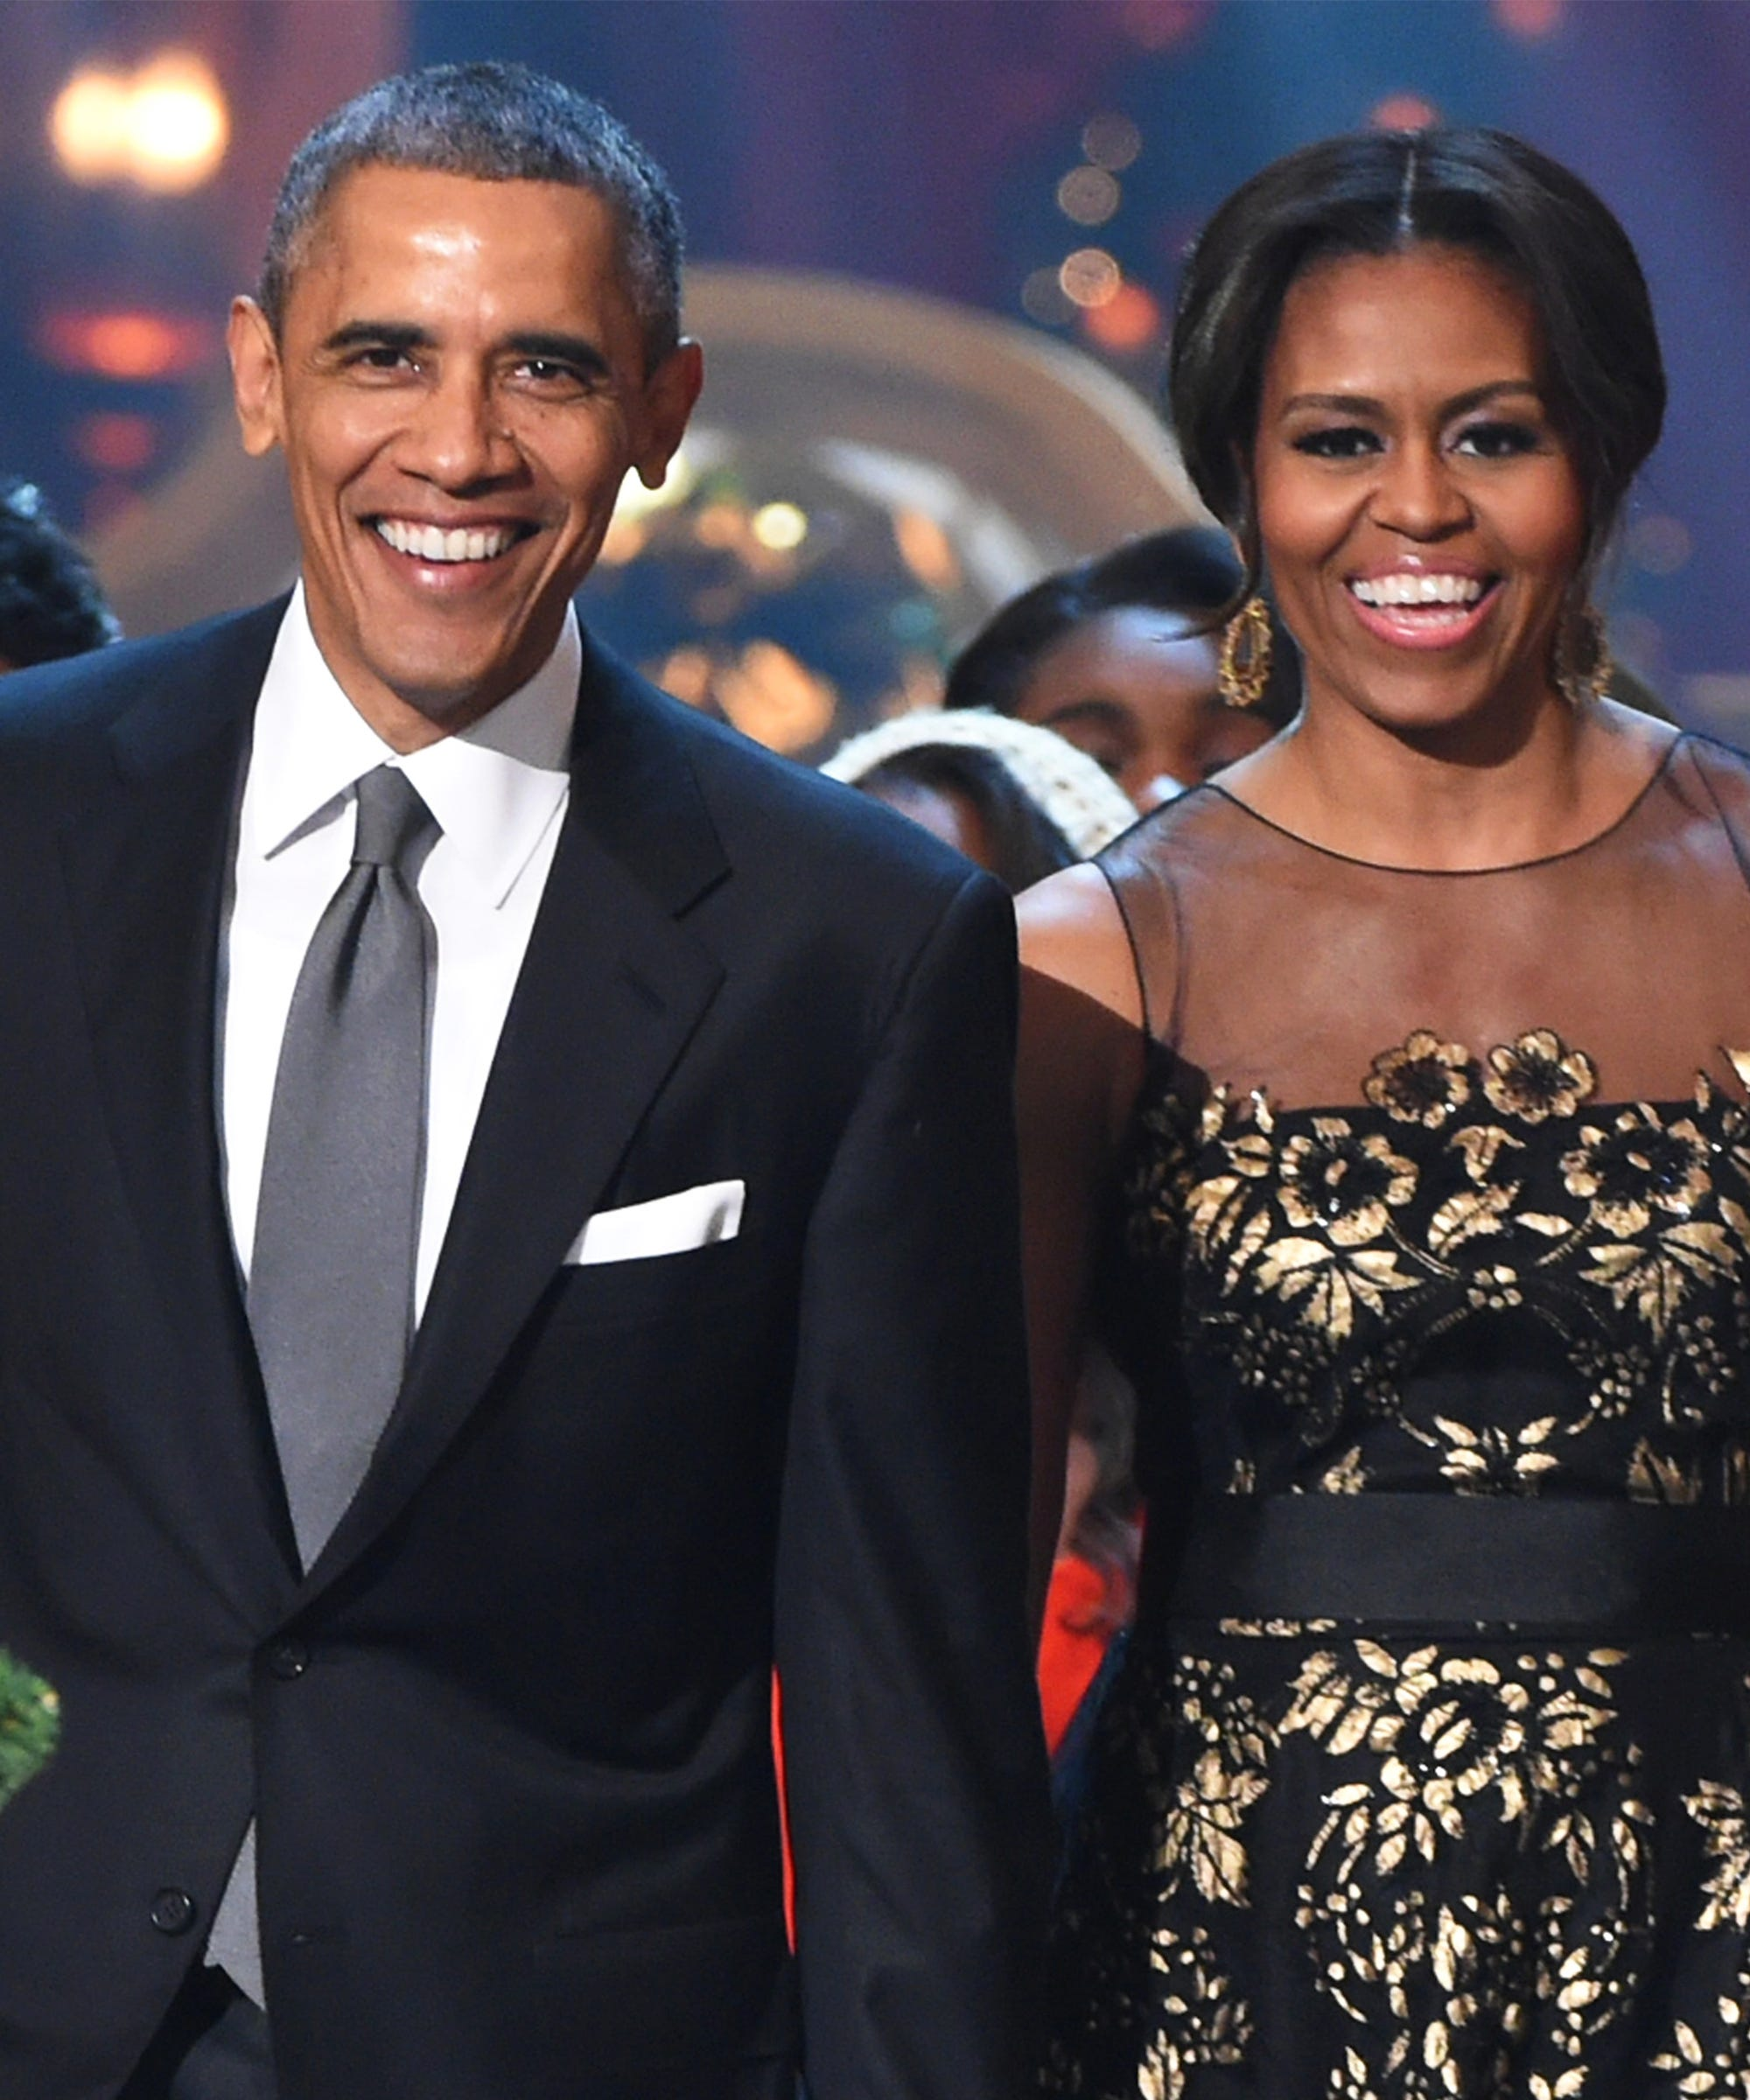 Obama Family Christmas Photo Twitter Reactions